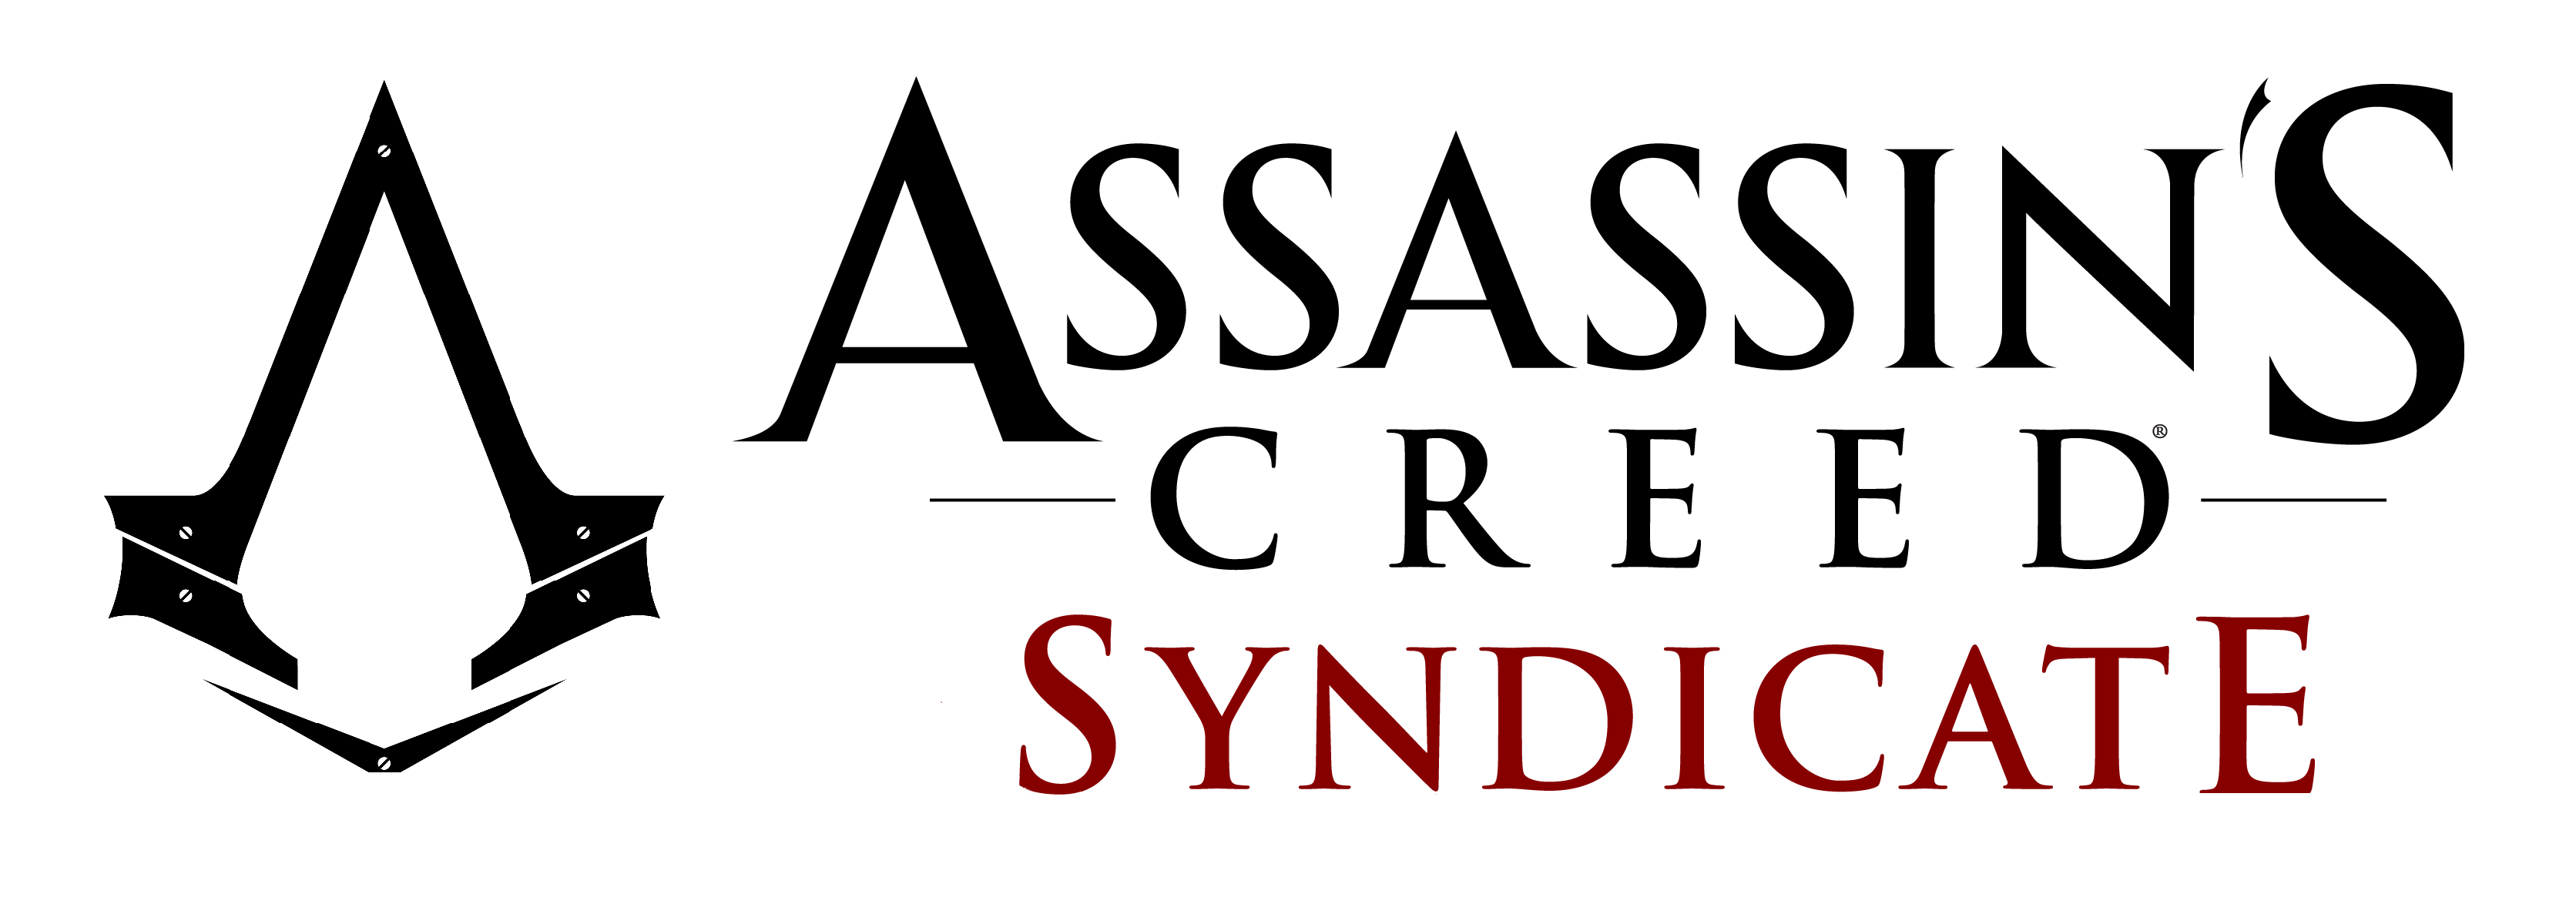 Assassin-s_Creed_Syndicate logo slim - Assassin Creed Syndicate PNG